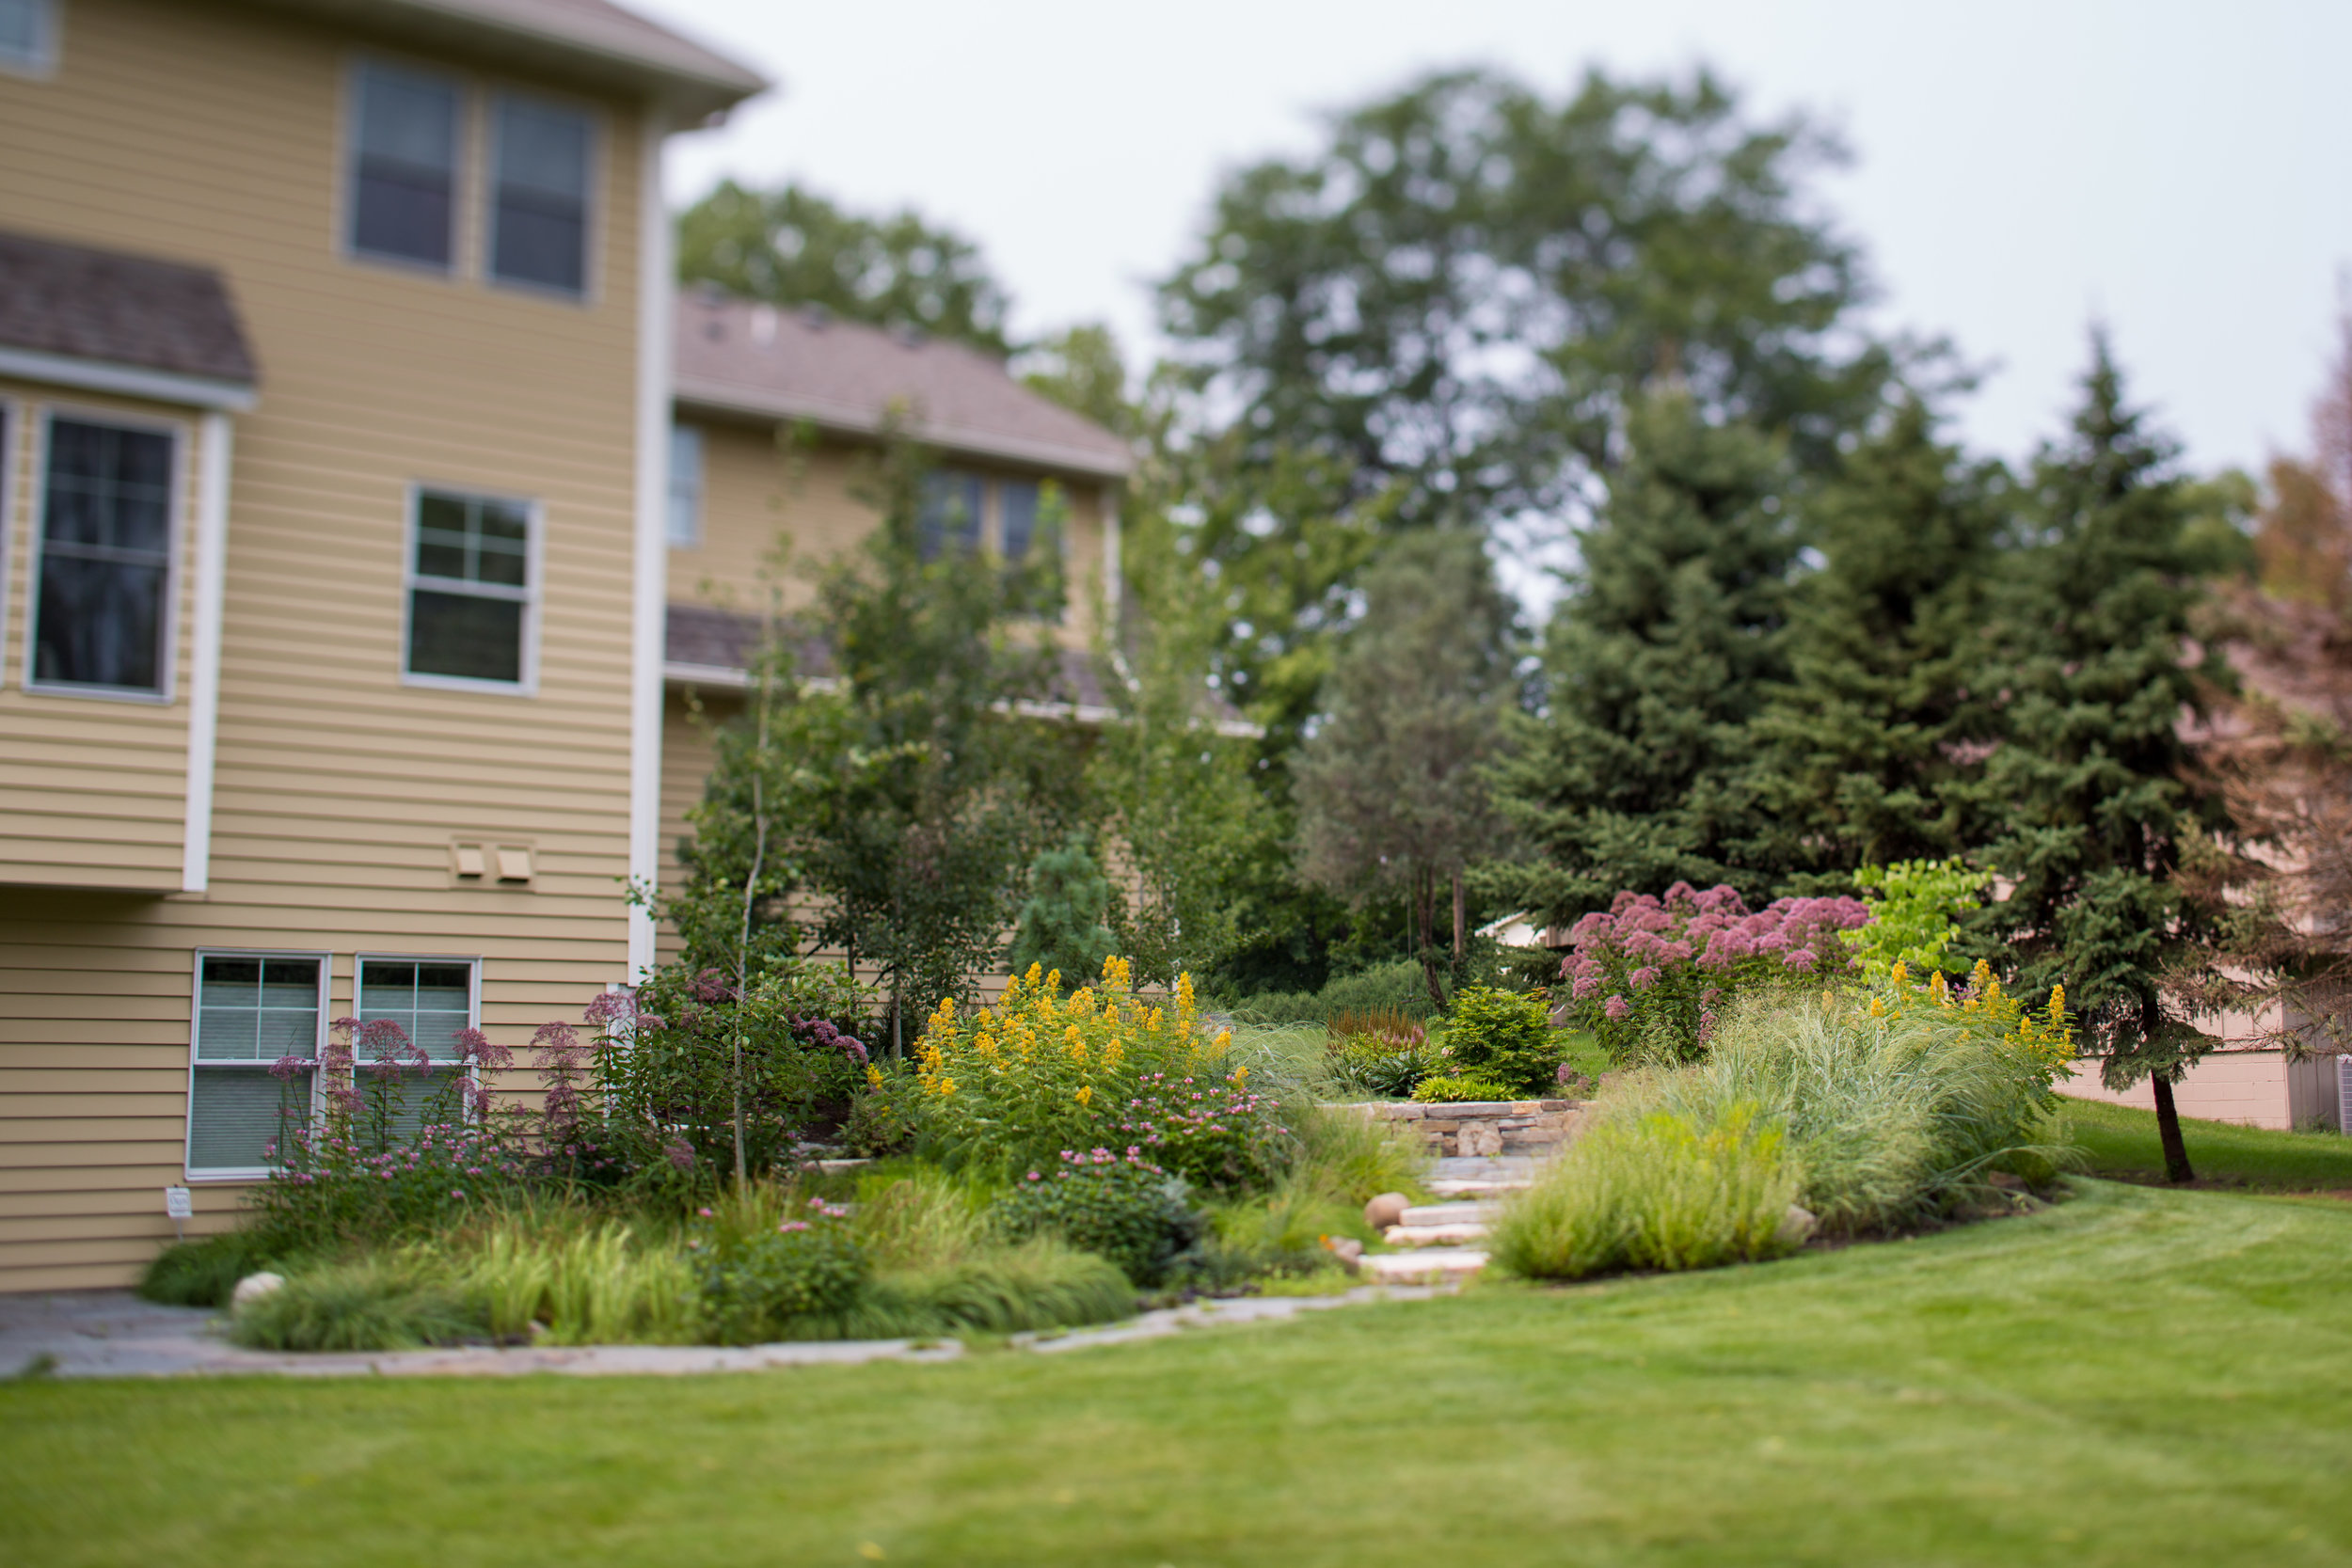 After: The house is now strongly anchored to its surroundings with tall trees and perennials.